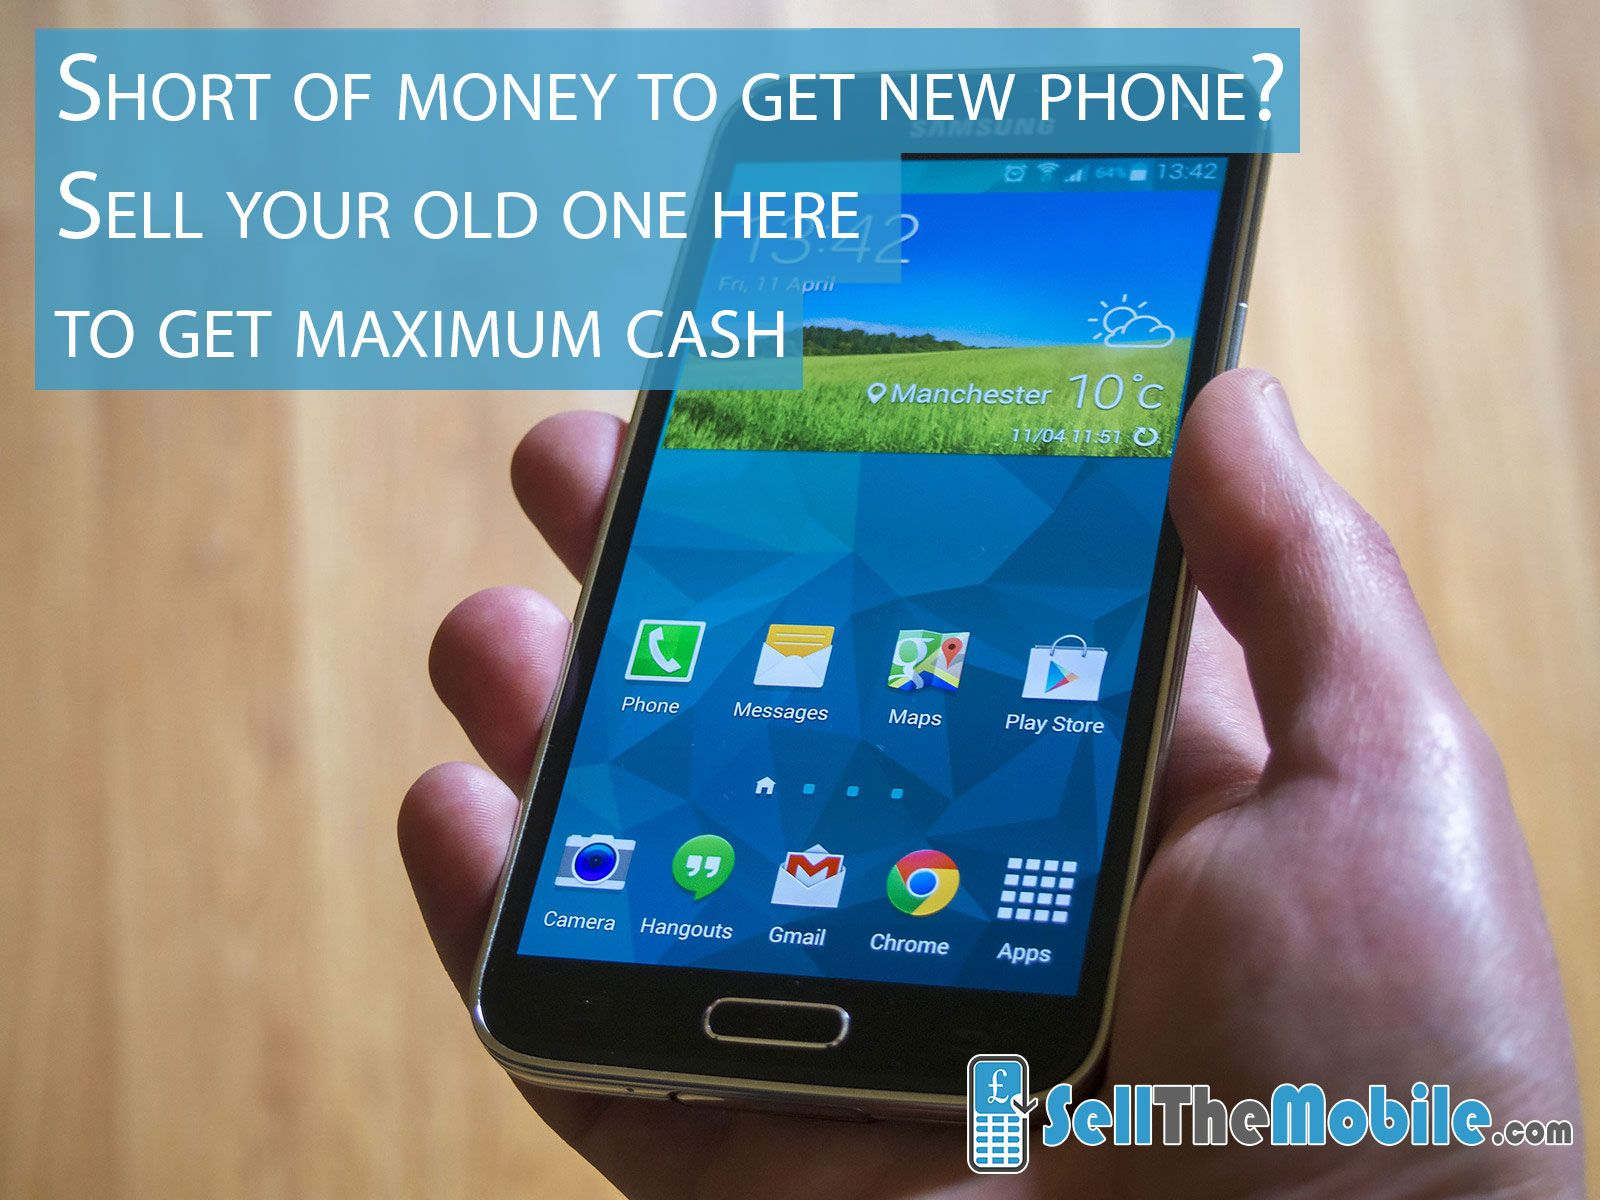 Short of money to get the new phone? Sell your old one